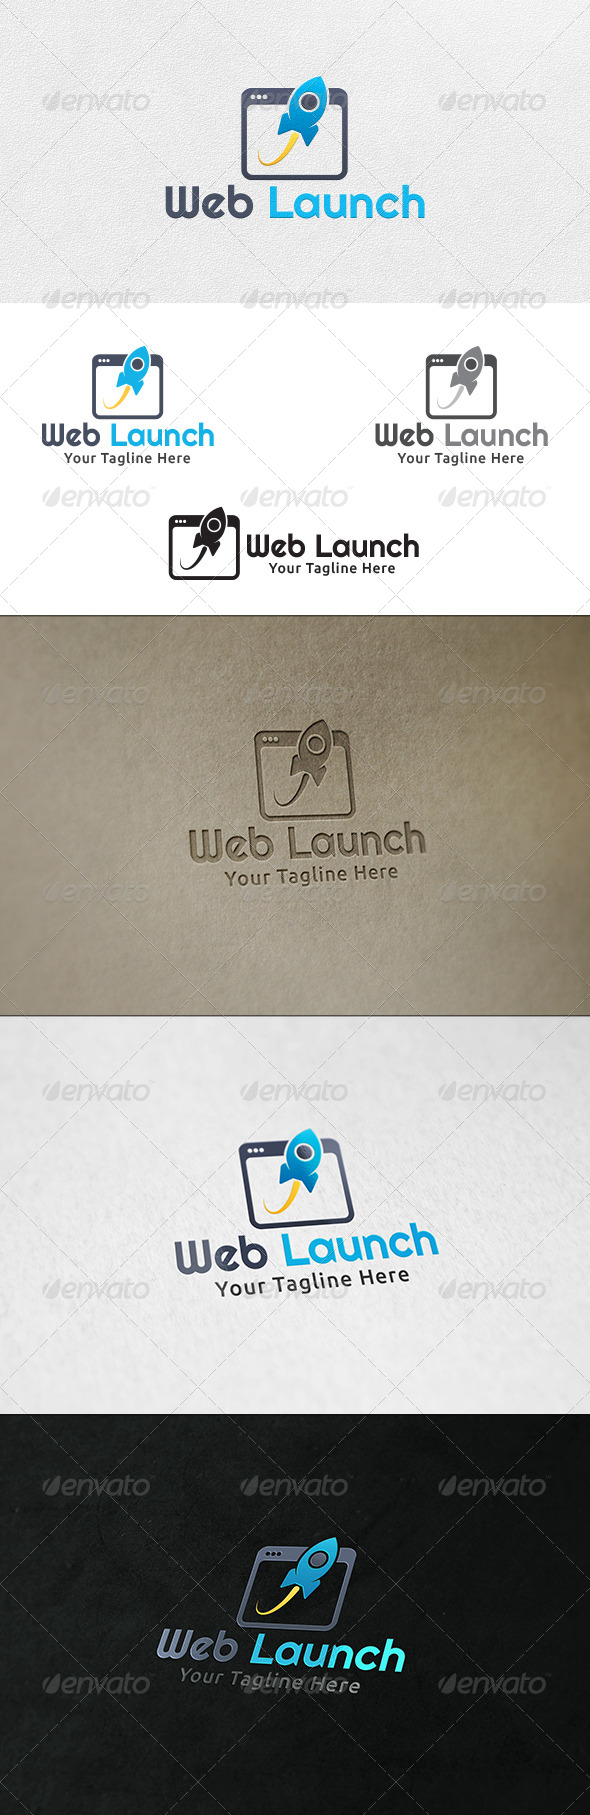 Web Launch - Logo Template - Objects Logo Templates